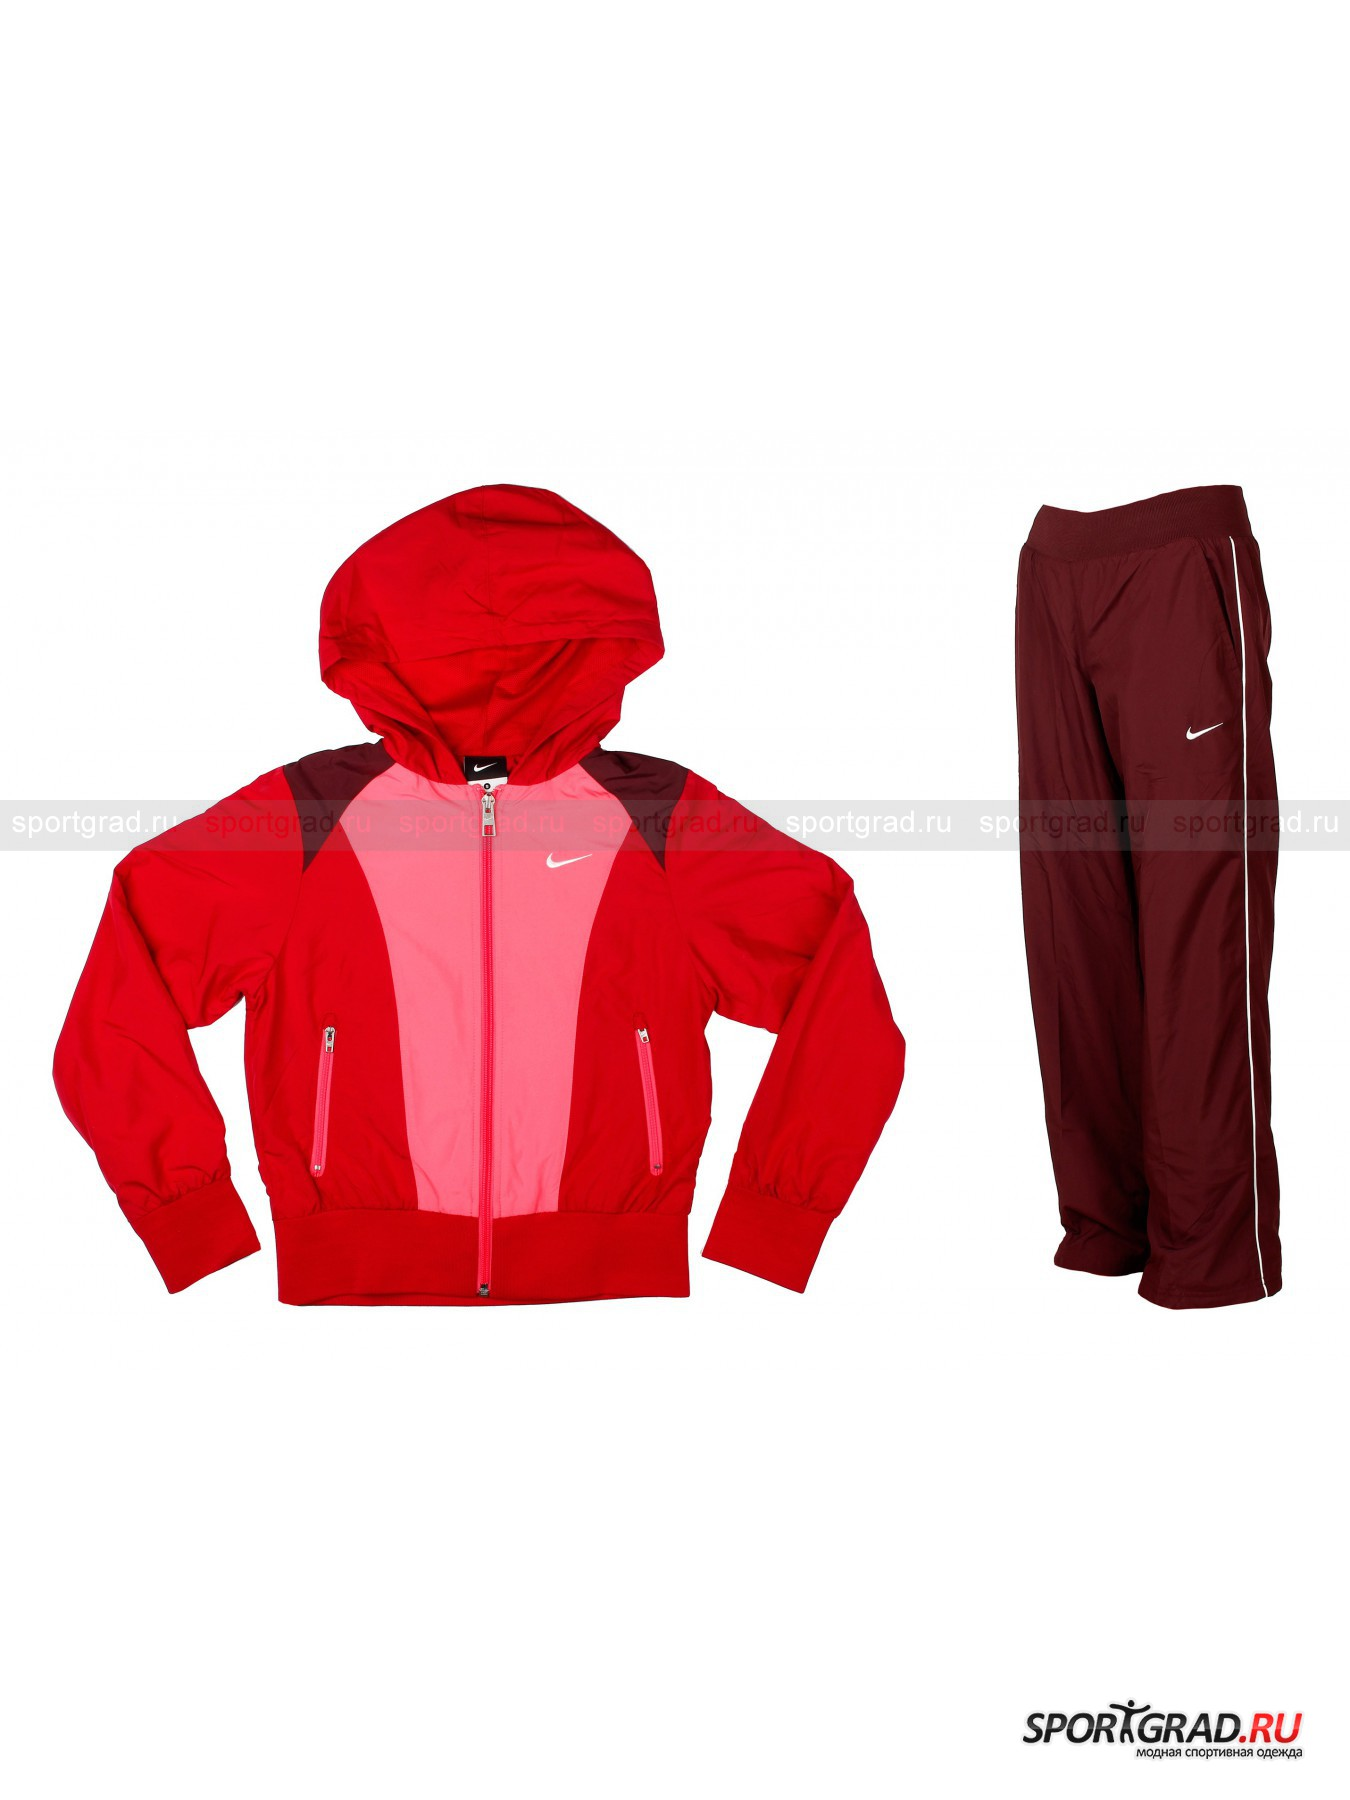 Костюм дет SPRINTER WOVEN WARM UP NIKE